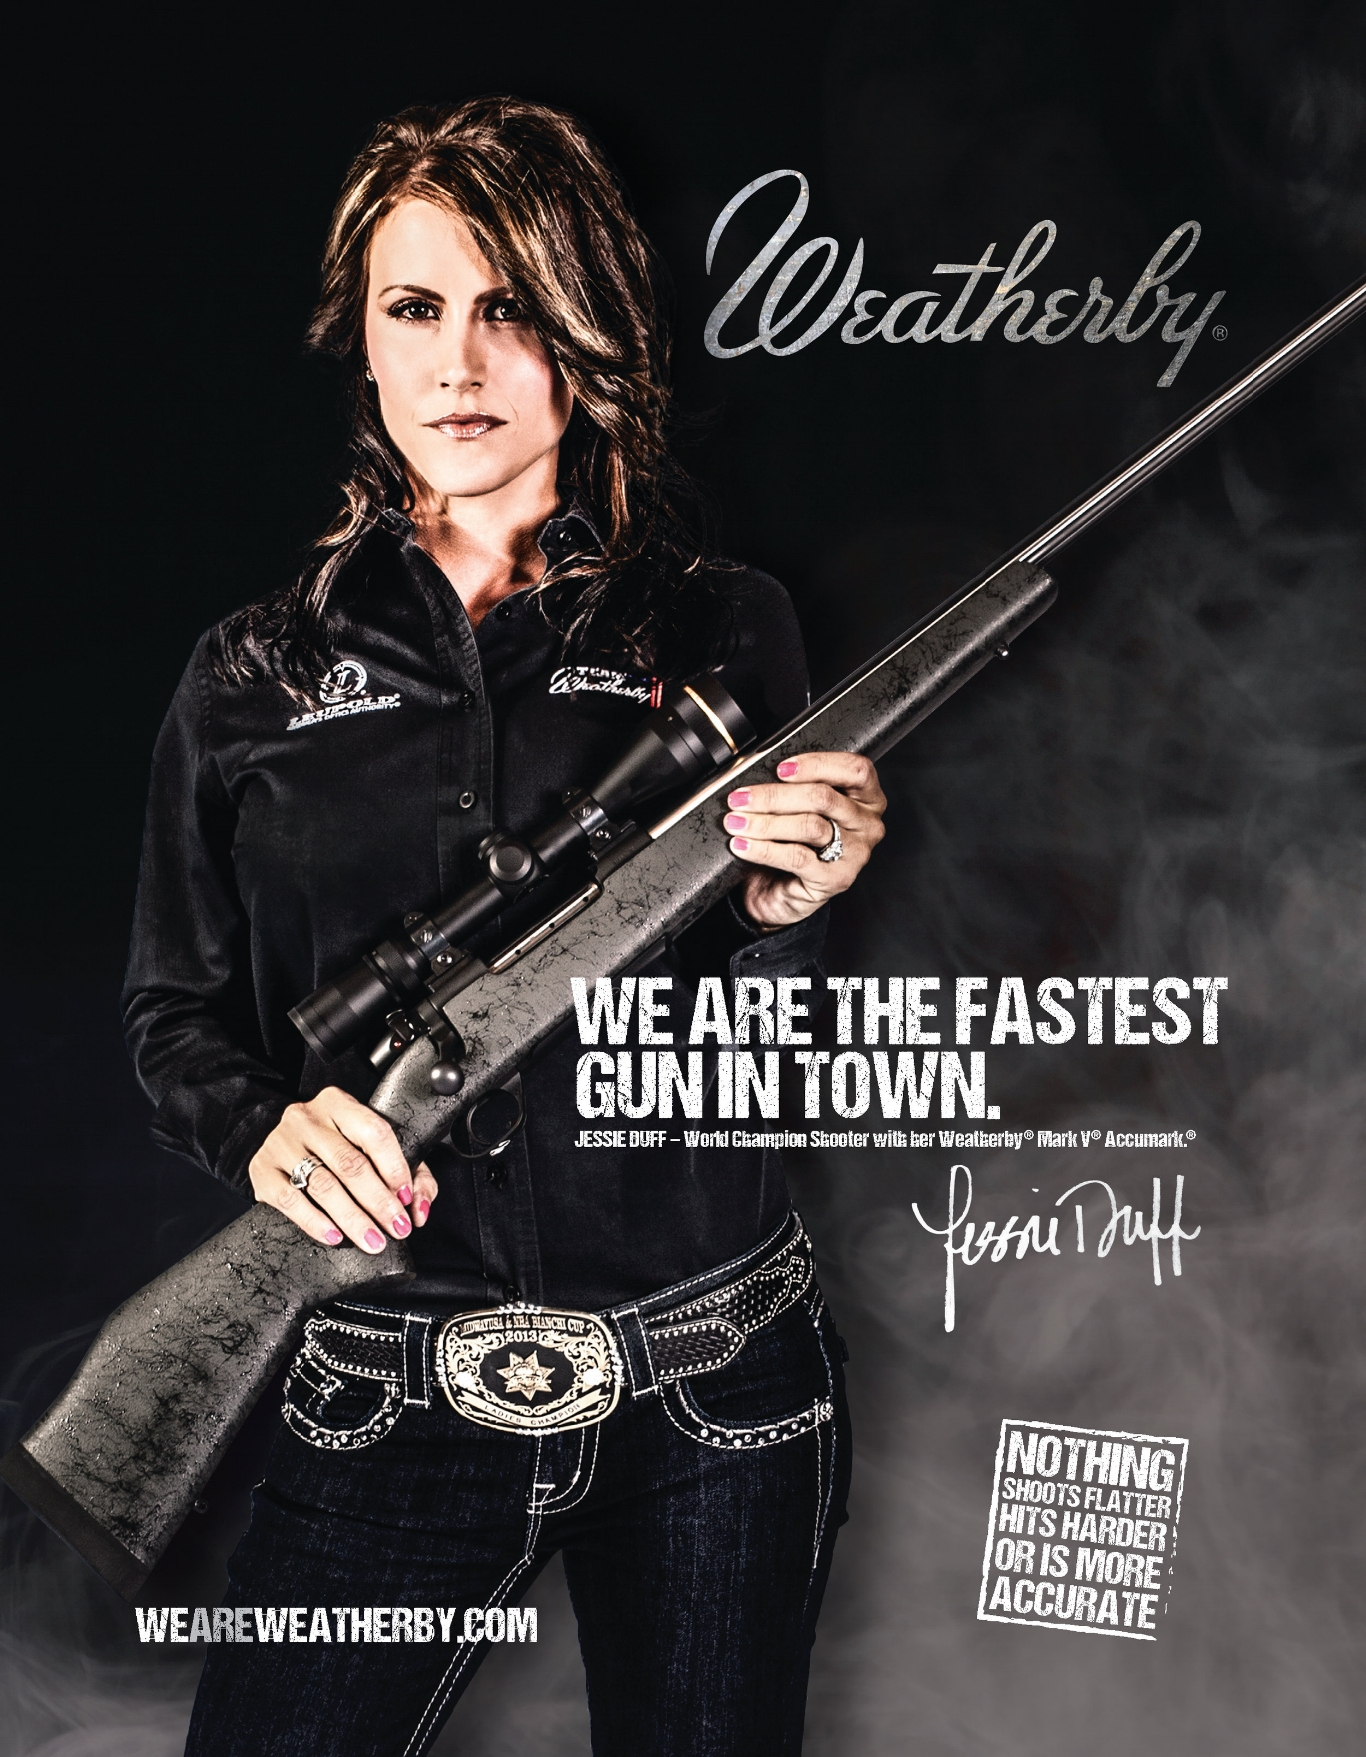 2014 Weatherby Campaign